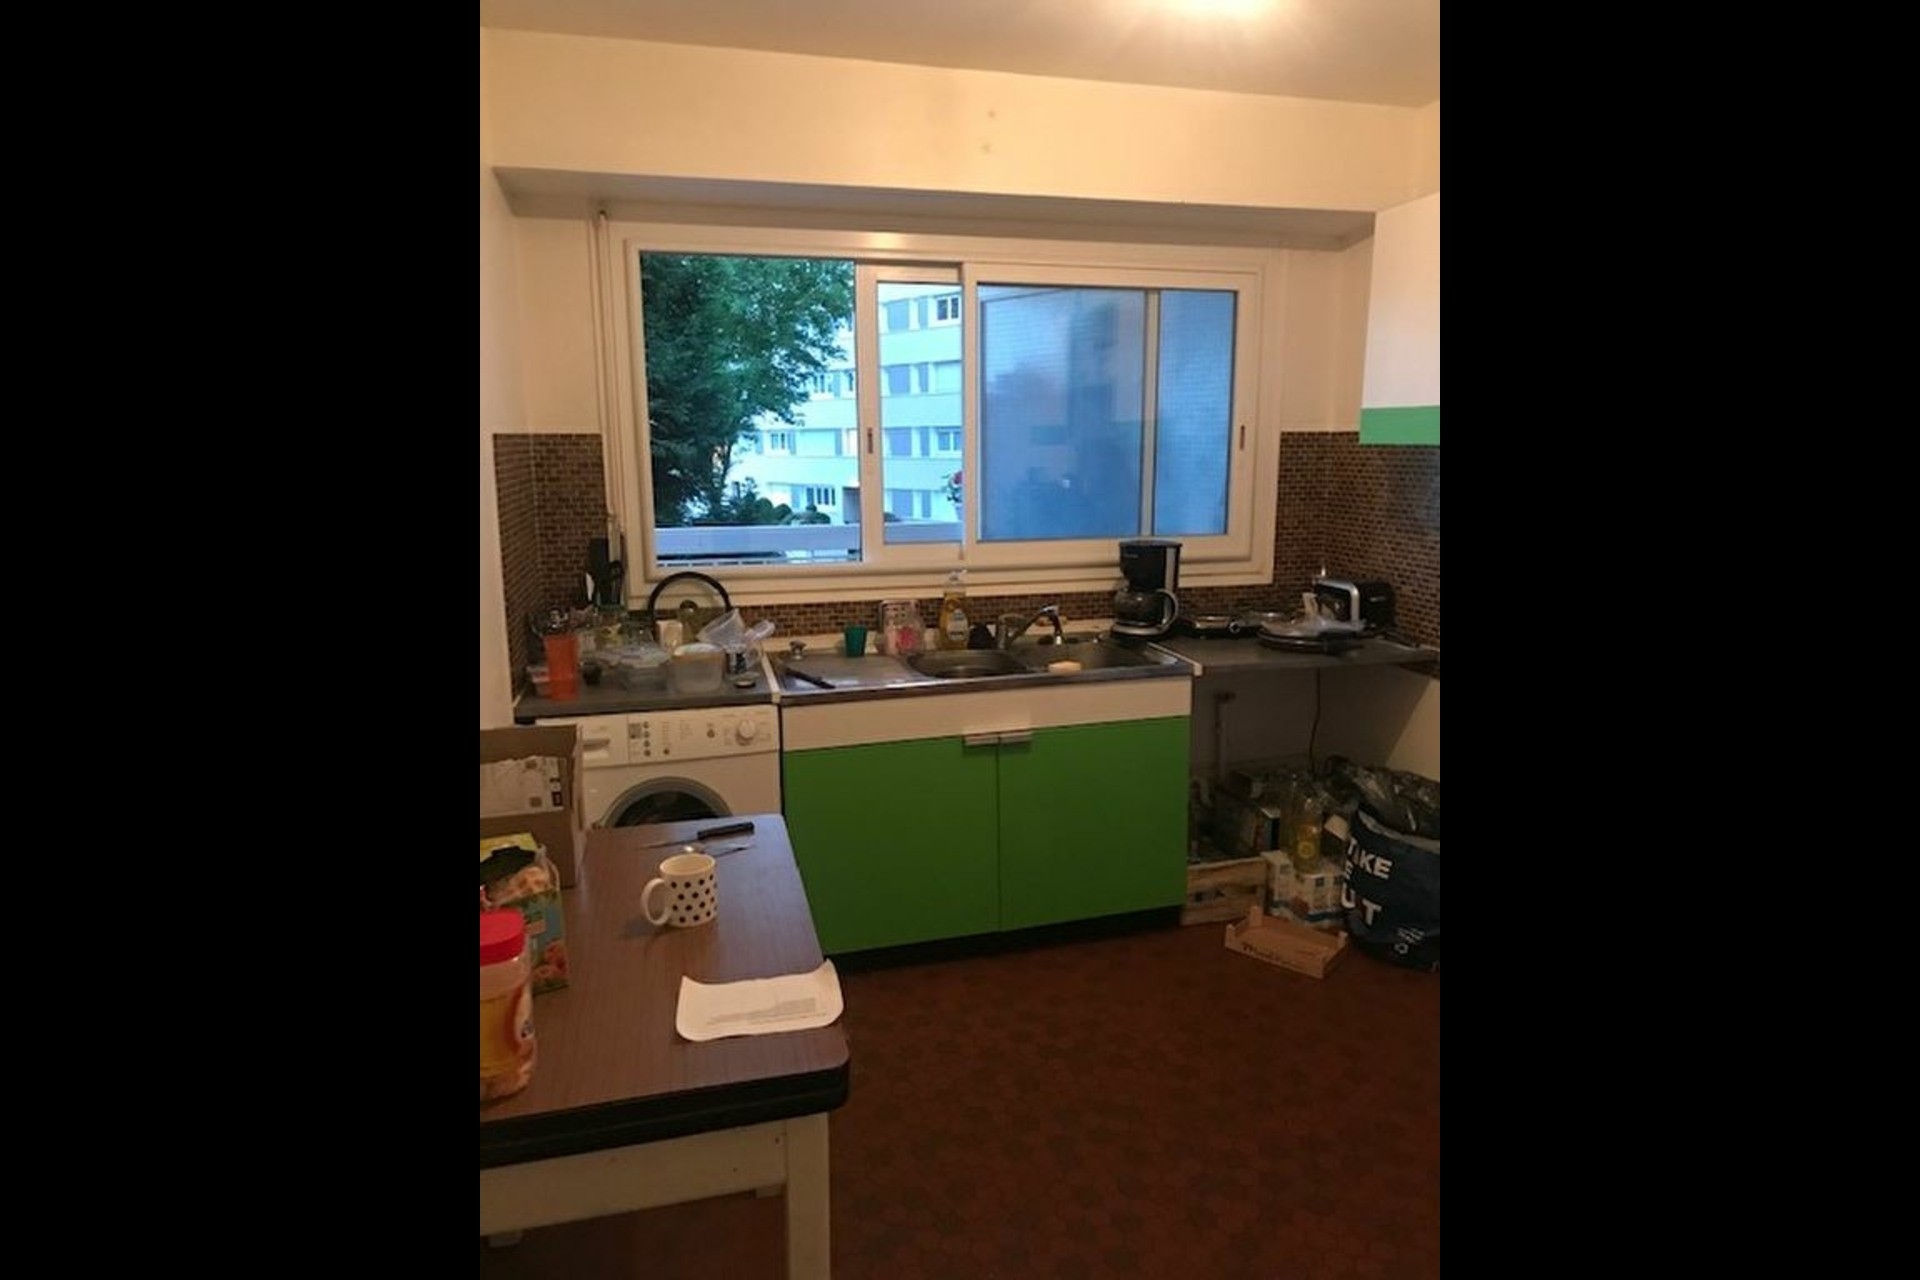 image 2 - Apartment For rent marly le roi - 2 rooms